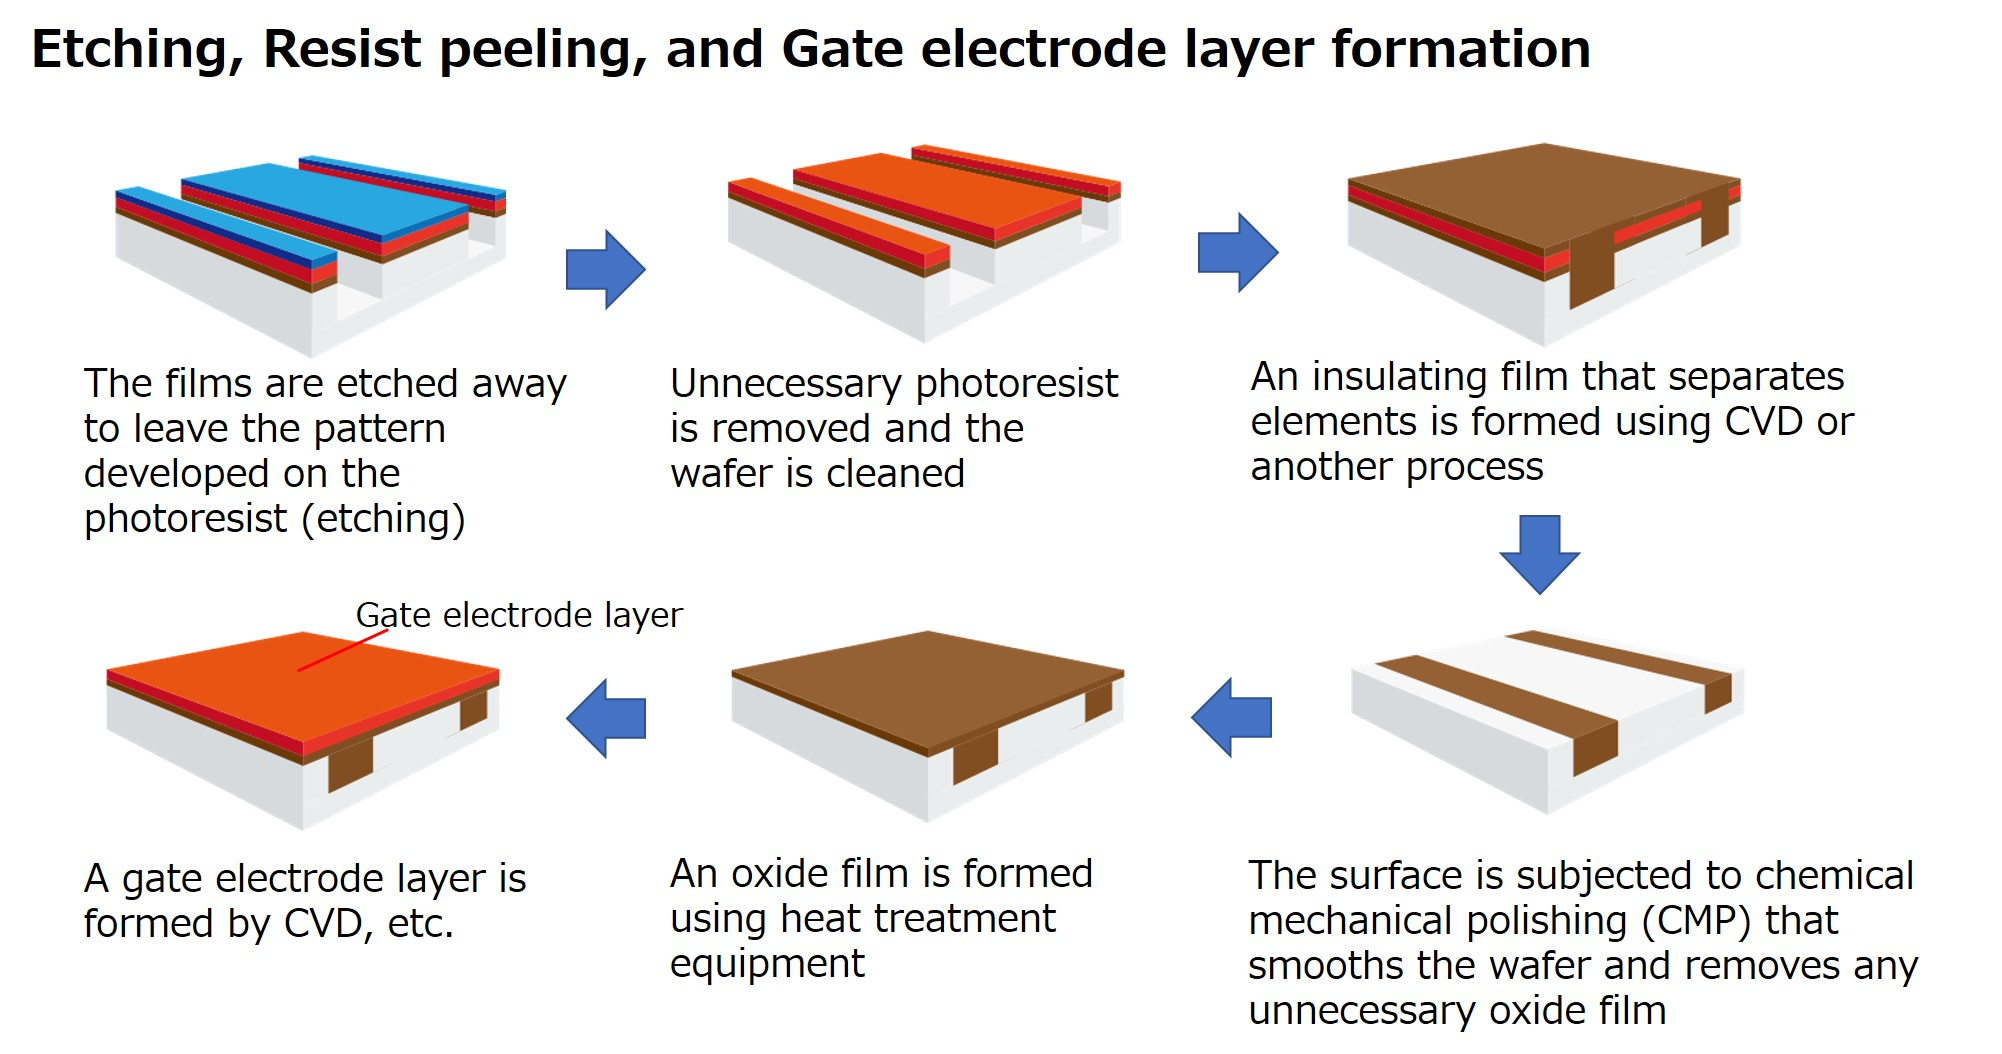 Etching, Resist peeling, and Gate electrode layer formation